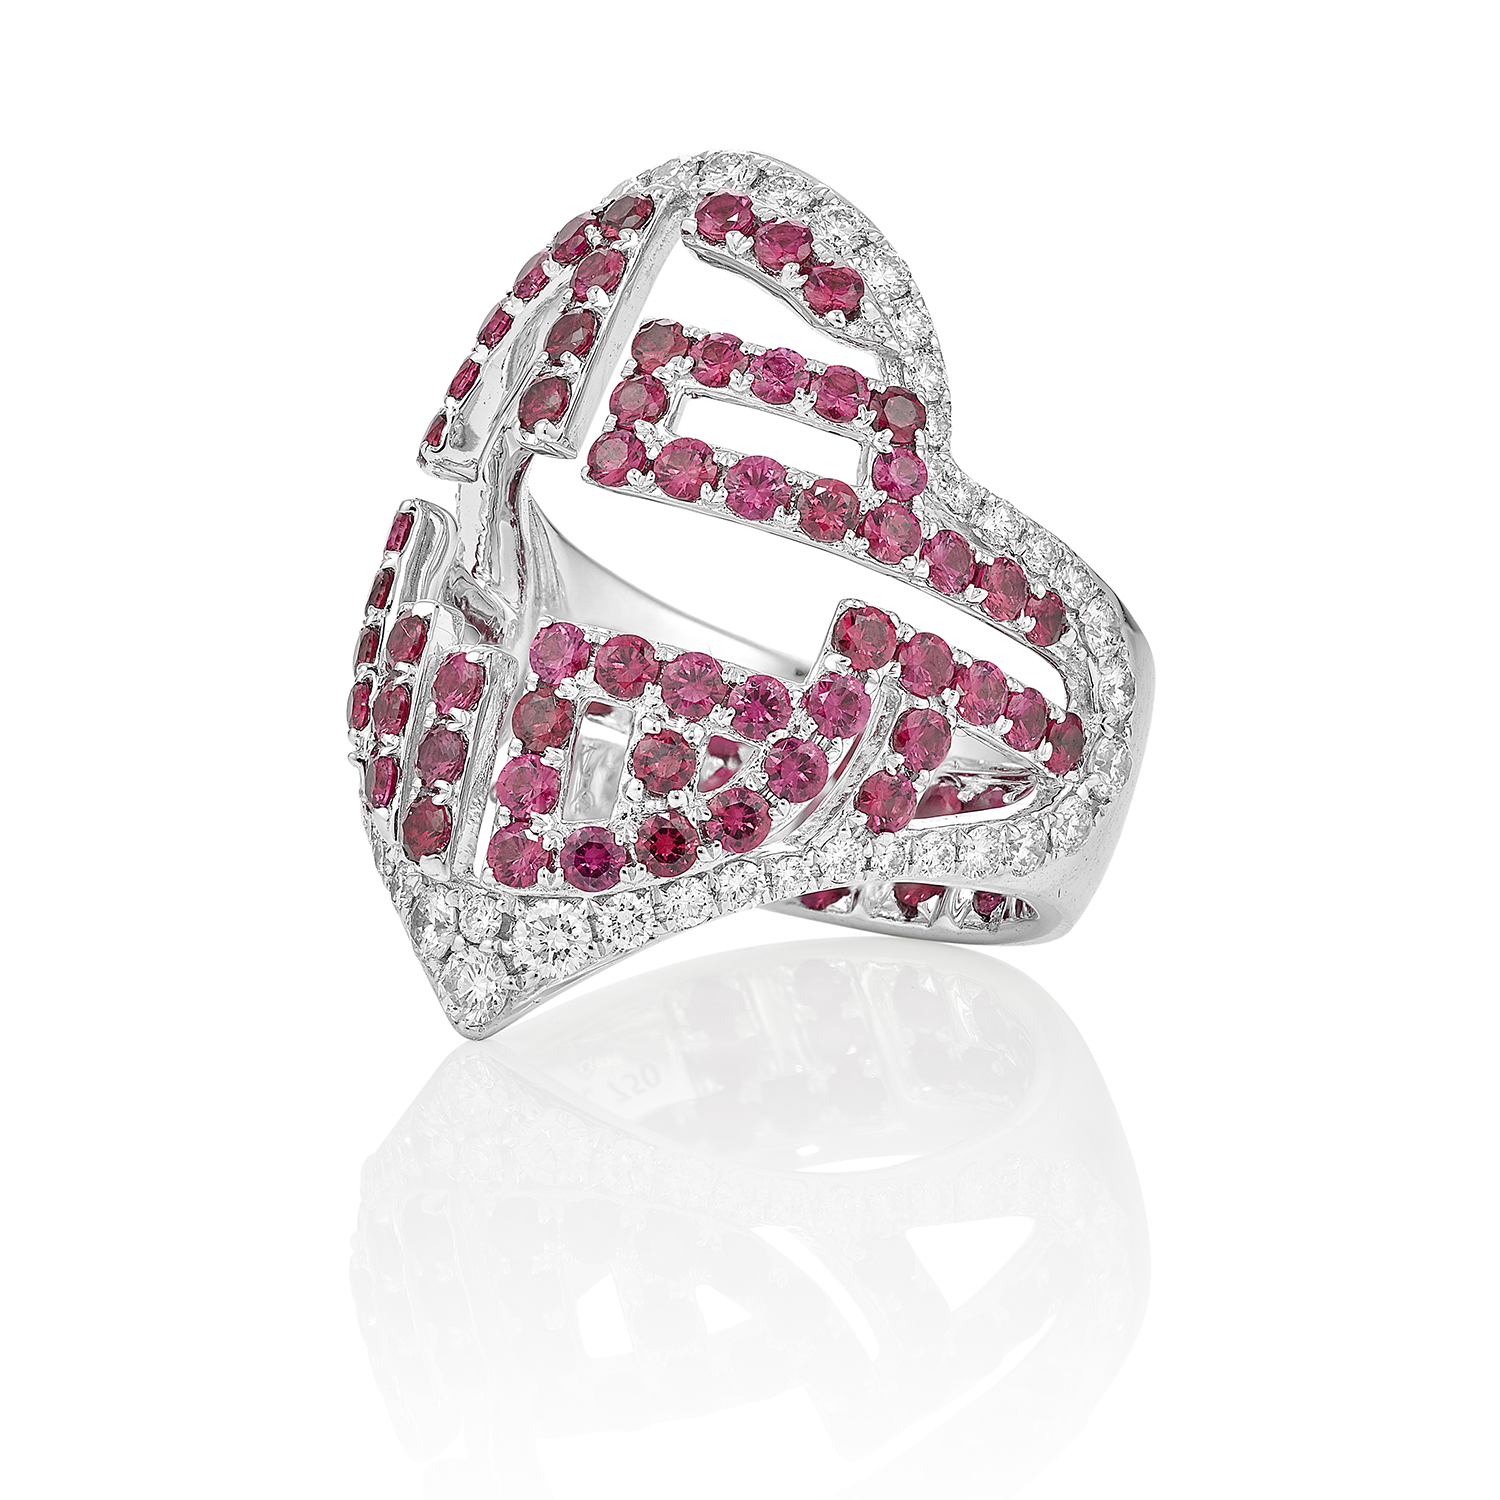 Ruby ring packshot jewellery photography London based still life photographer howlett photography